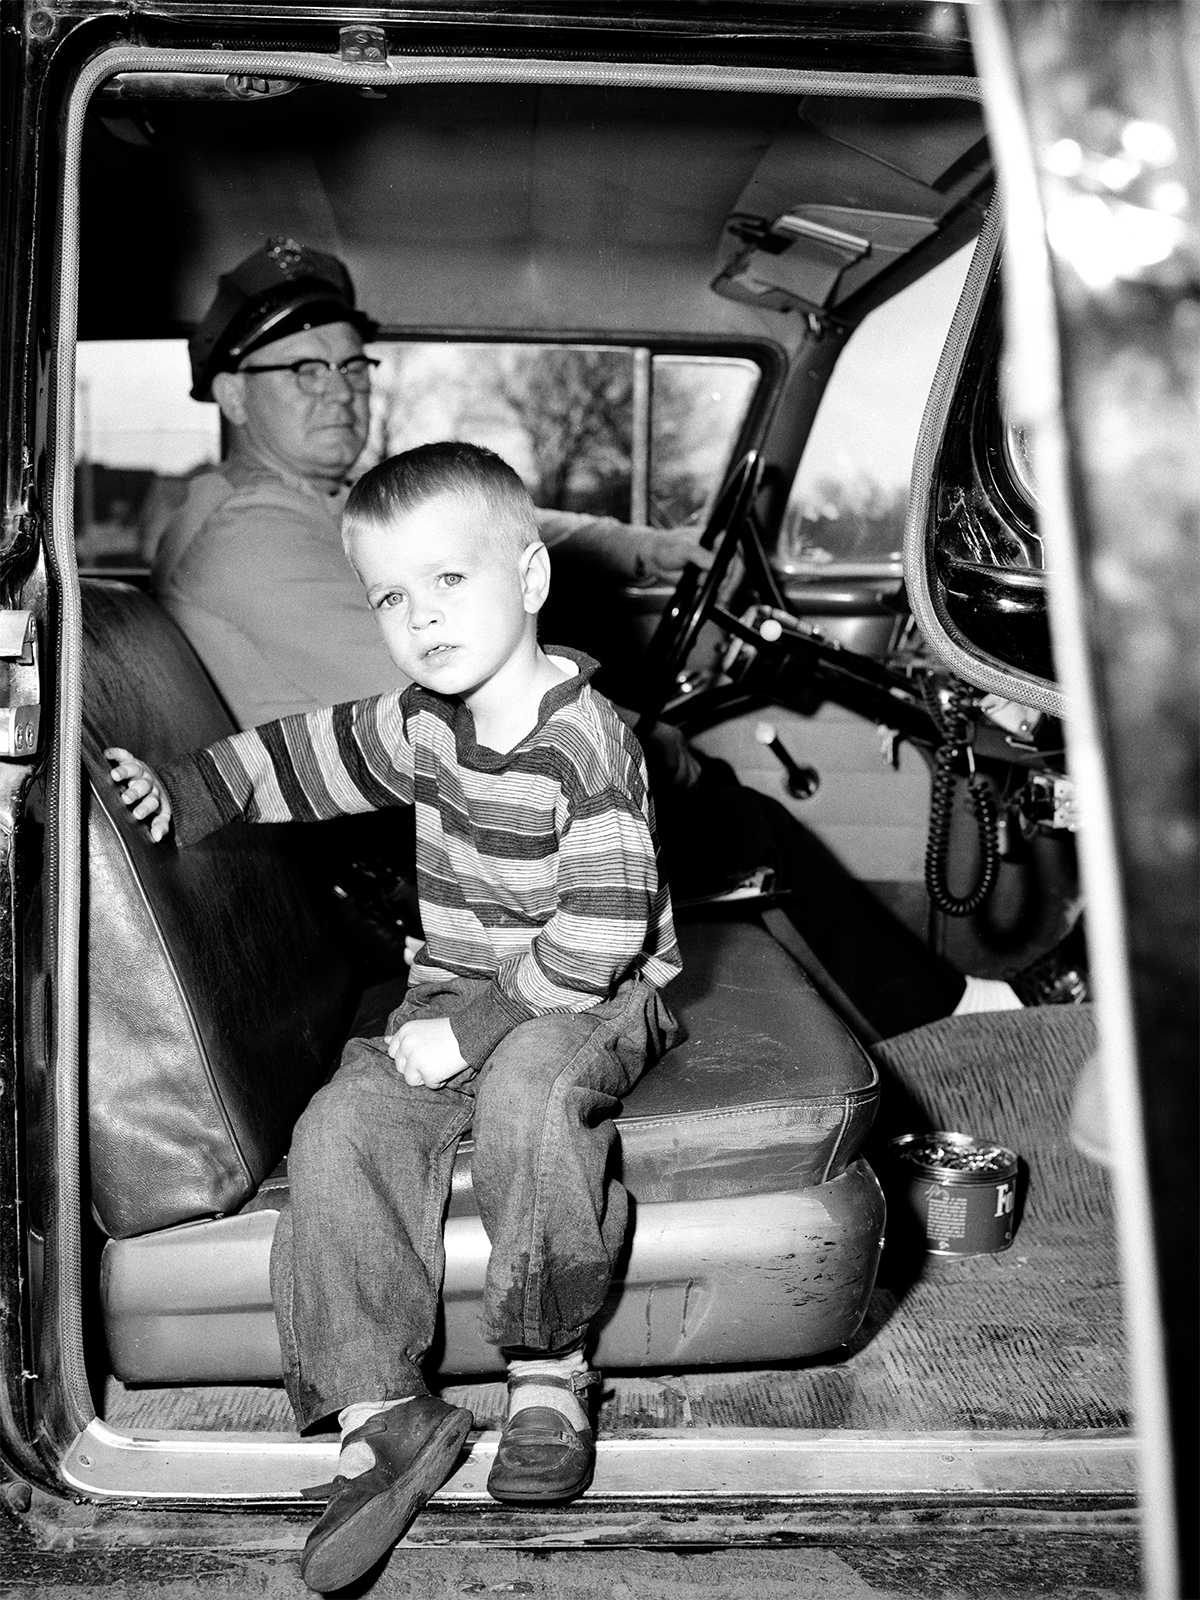 Lost boy in police car